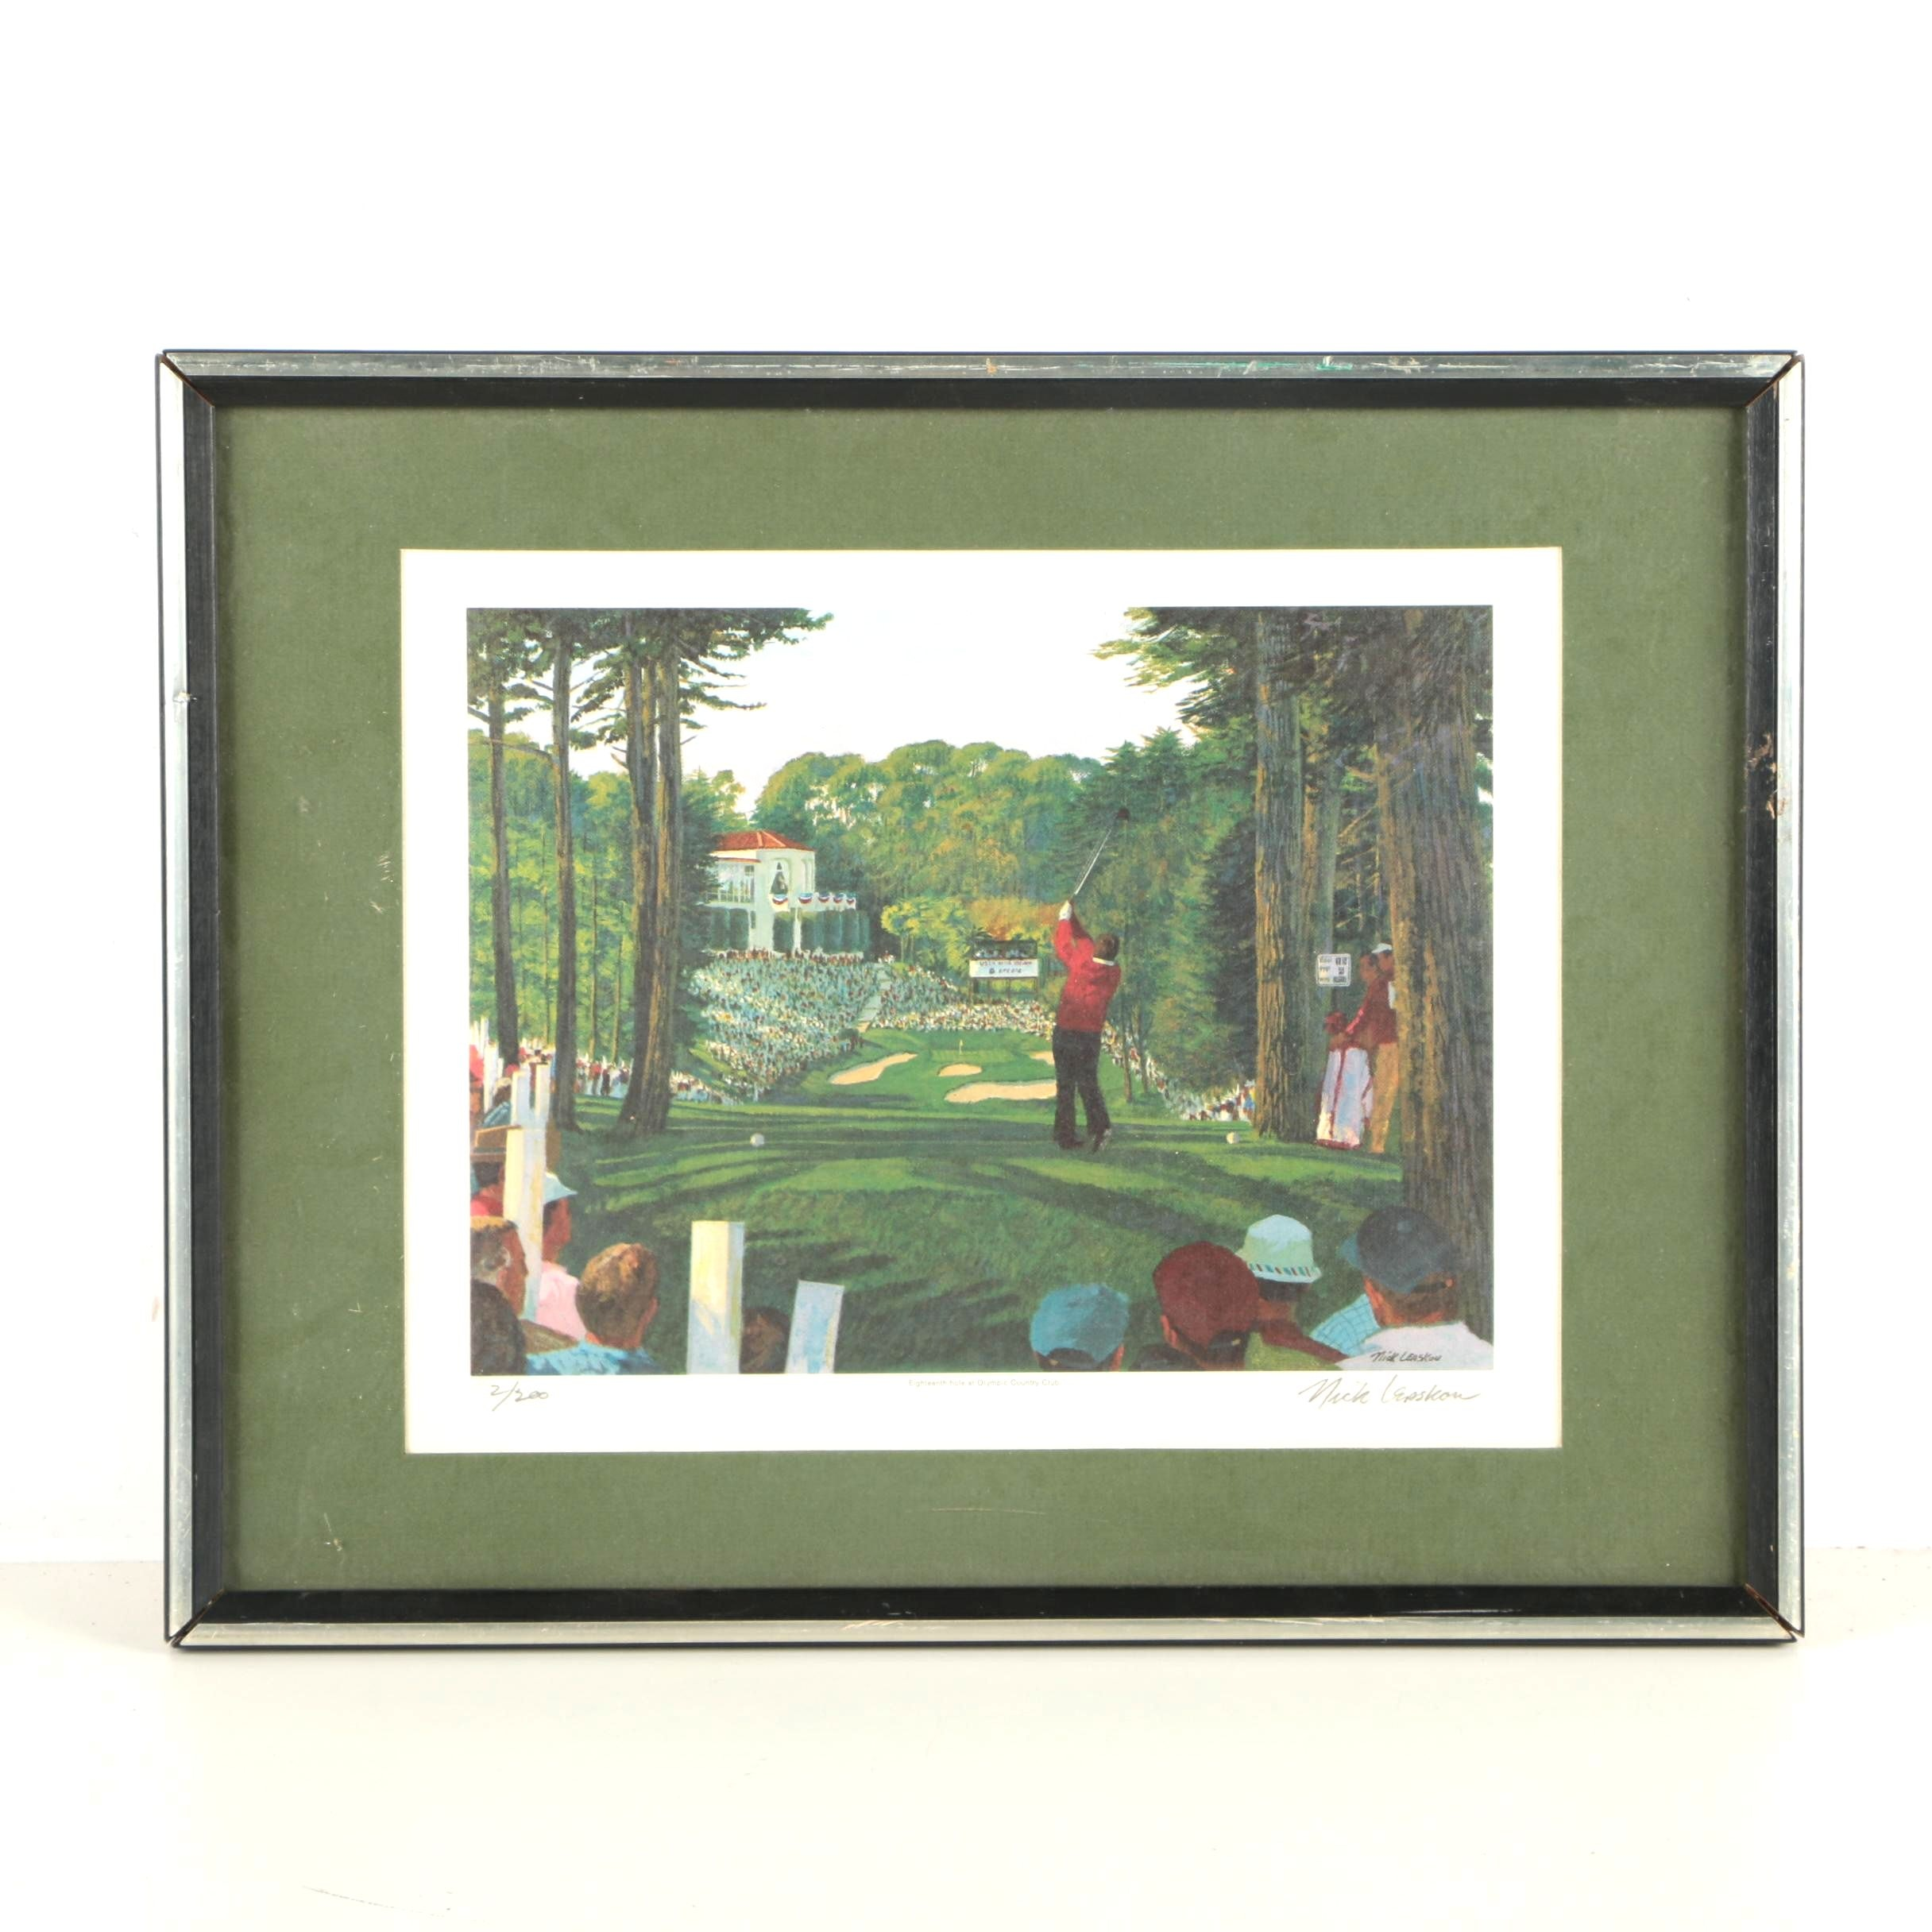 Nick Leaskou Limited Edition Offset Lithograph of a Golfer